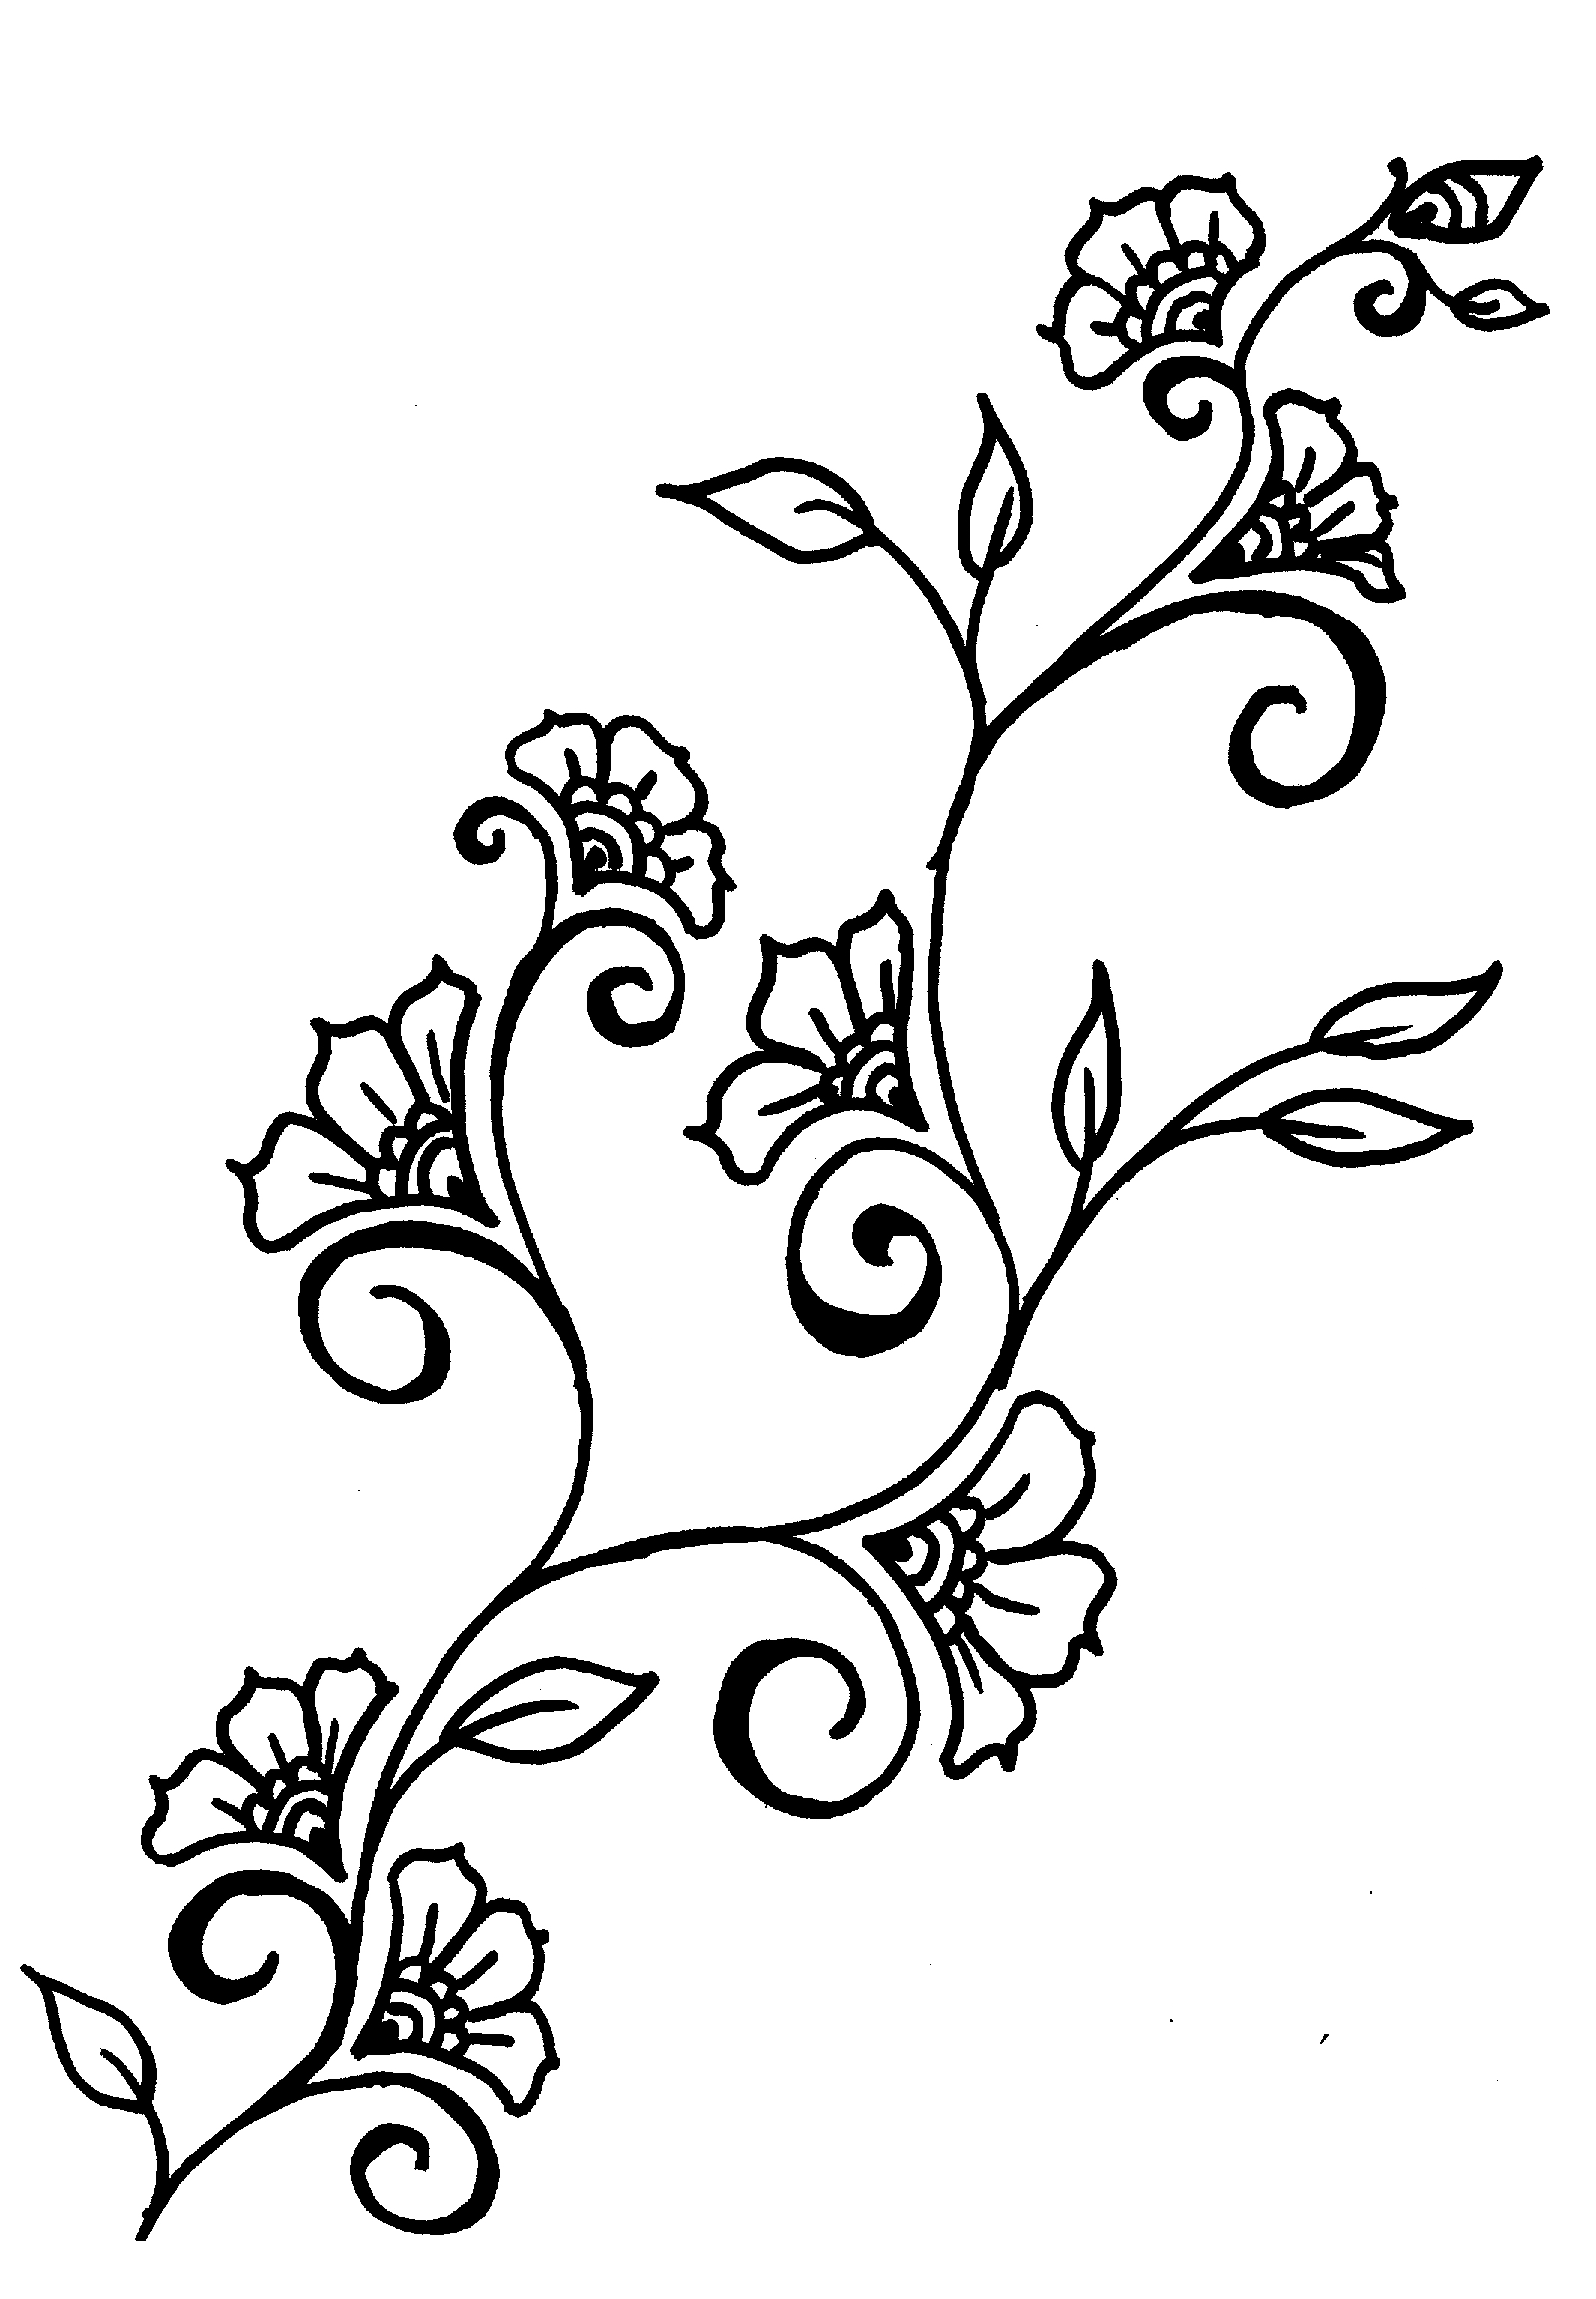 Vine tattoos designs ideas and meaning tattoos for you for Drawing design ideas